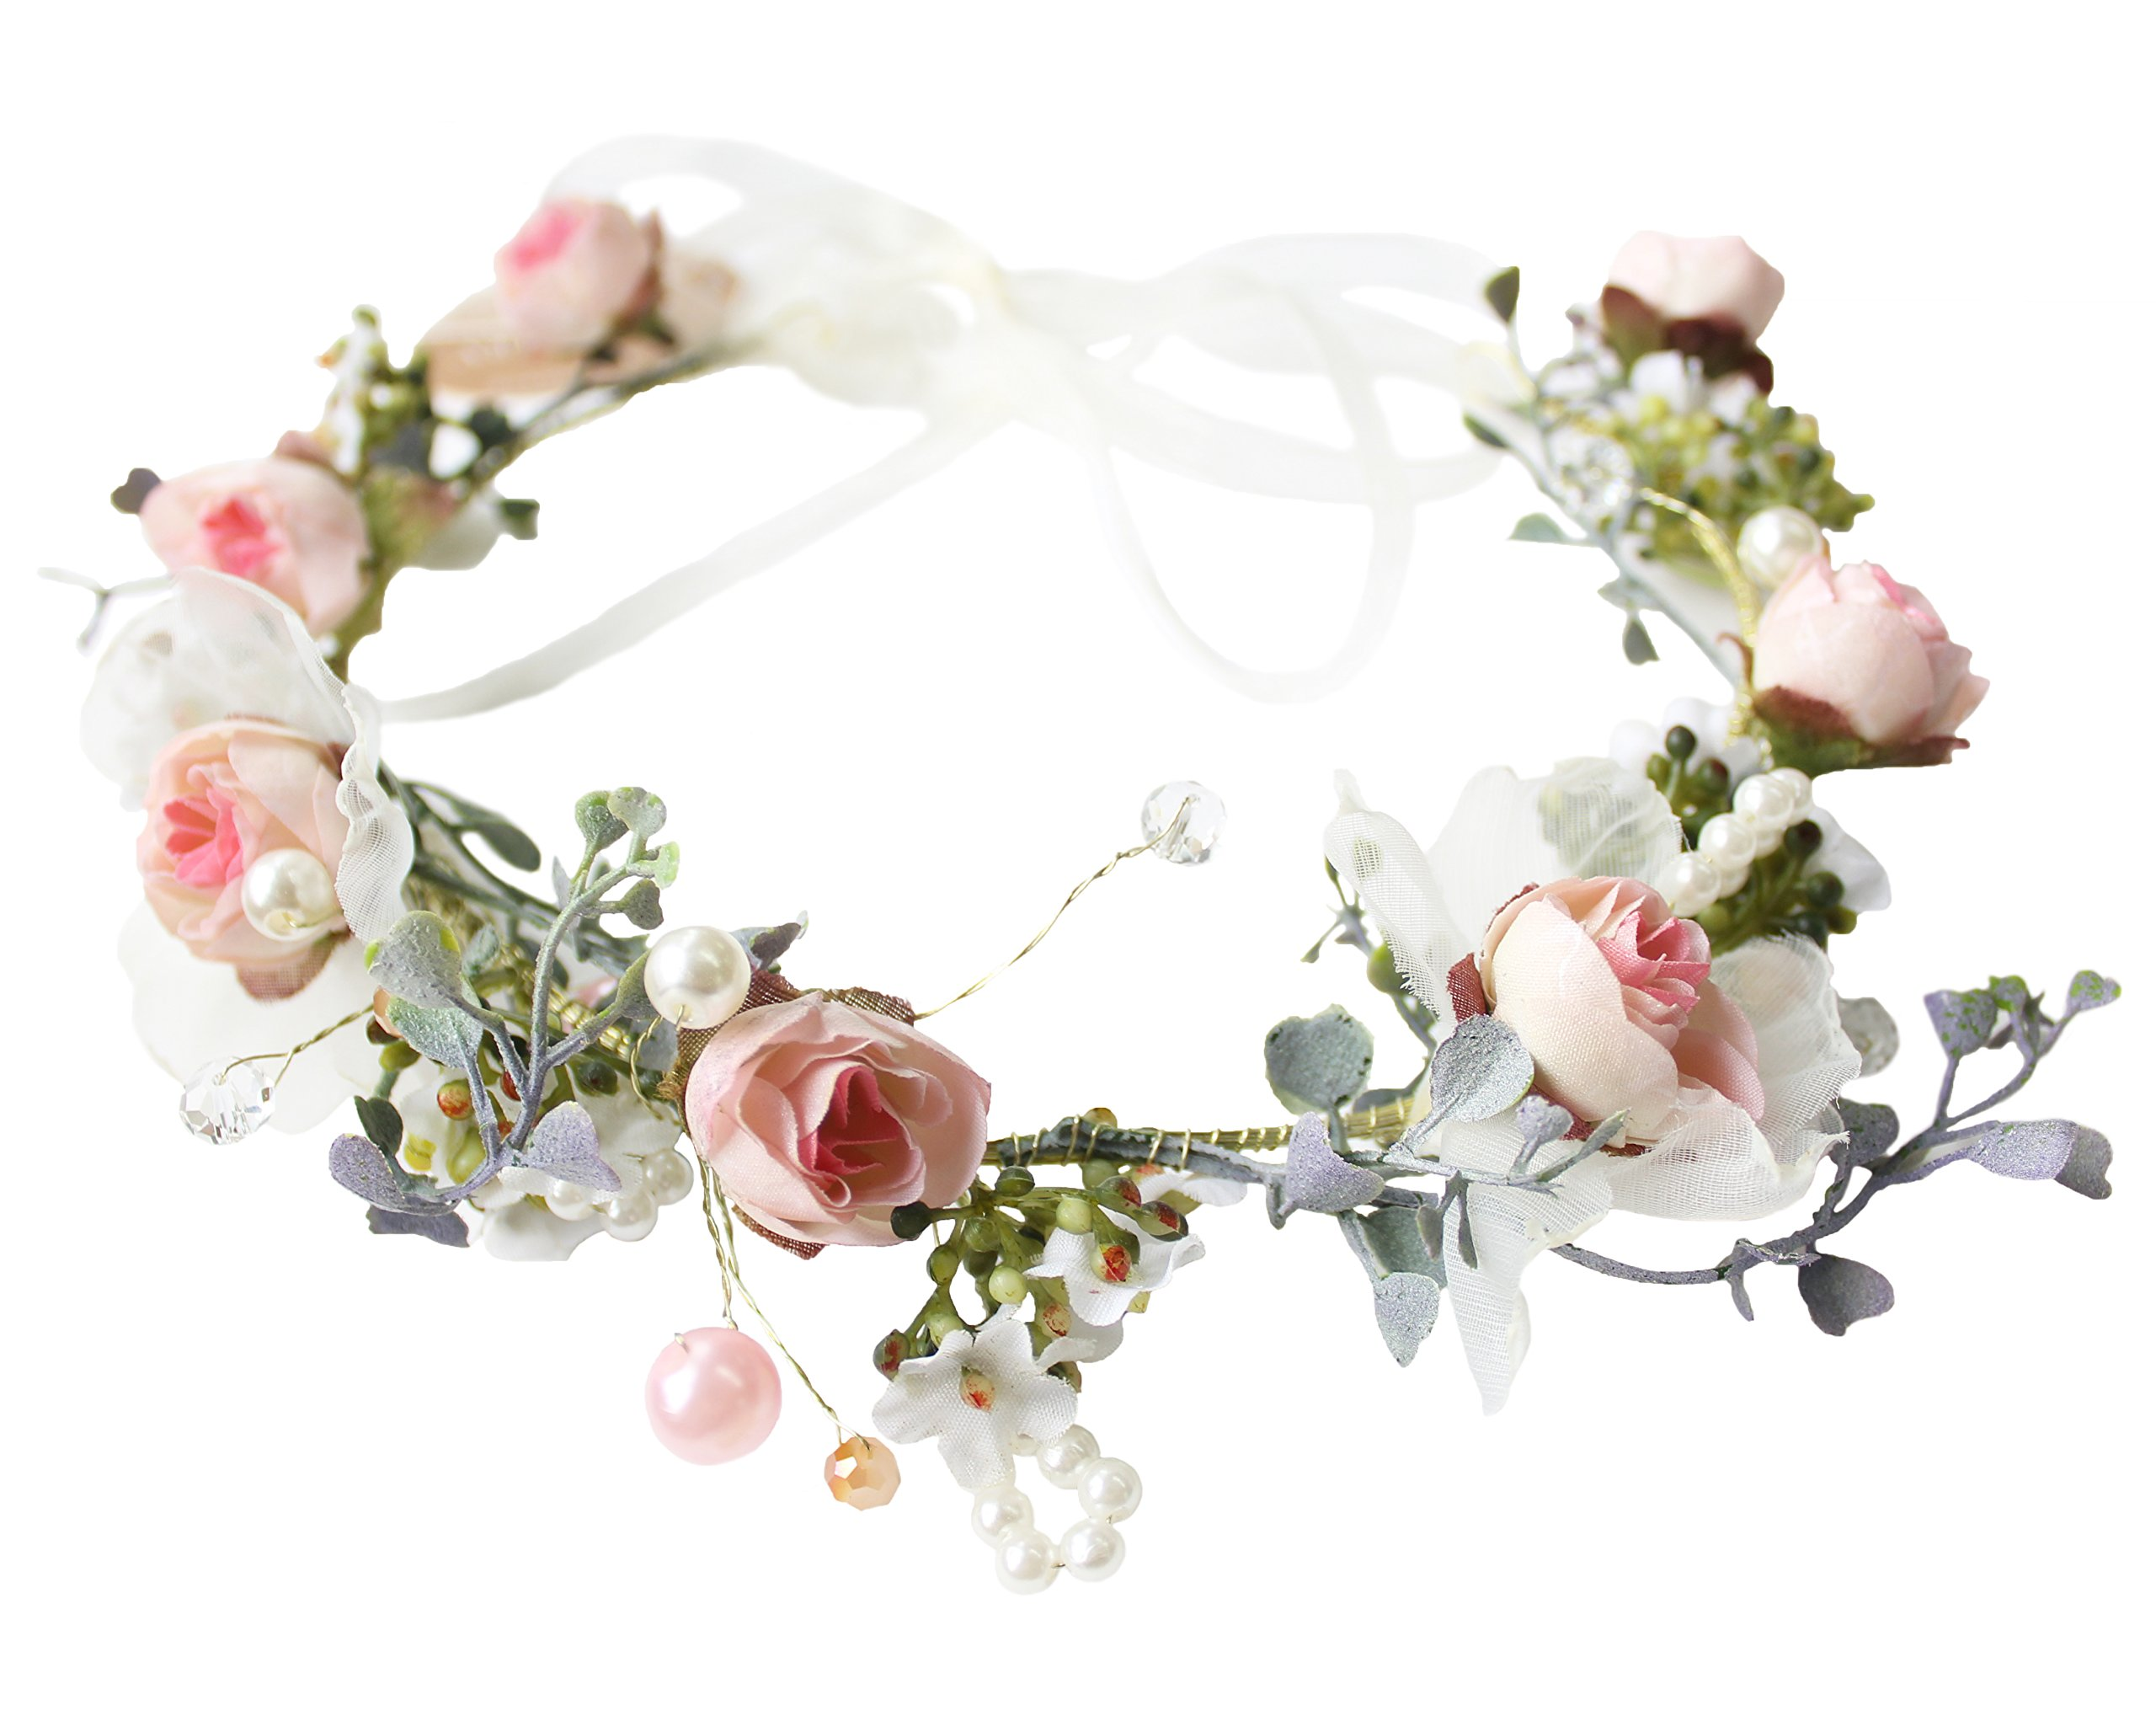 Pearl Flower Crown Floral Garland Headband Flower Halo Headpiece Hair Wreath Boho with Ribbon Party Wedding Festival Photos Pink by Vivivalue by Vivivalue